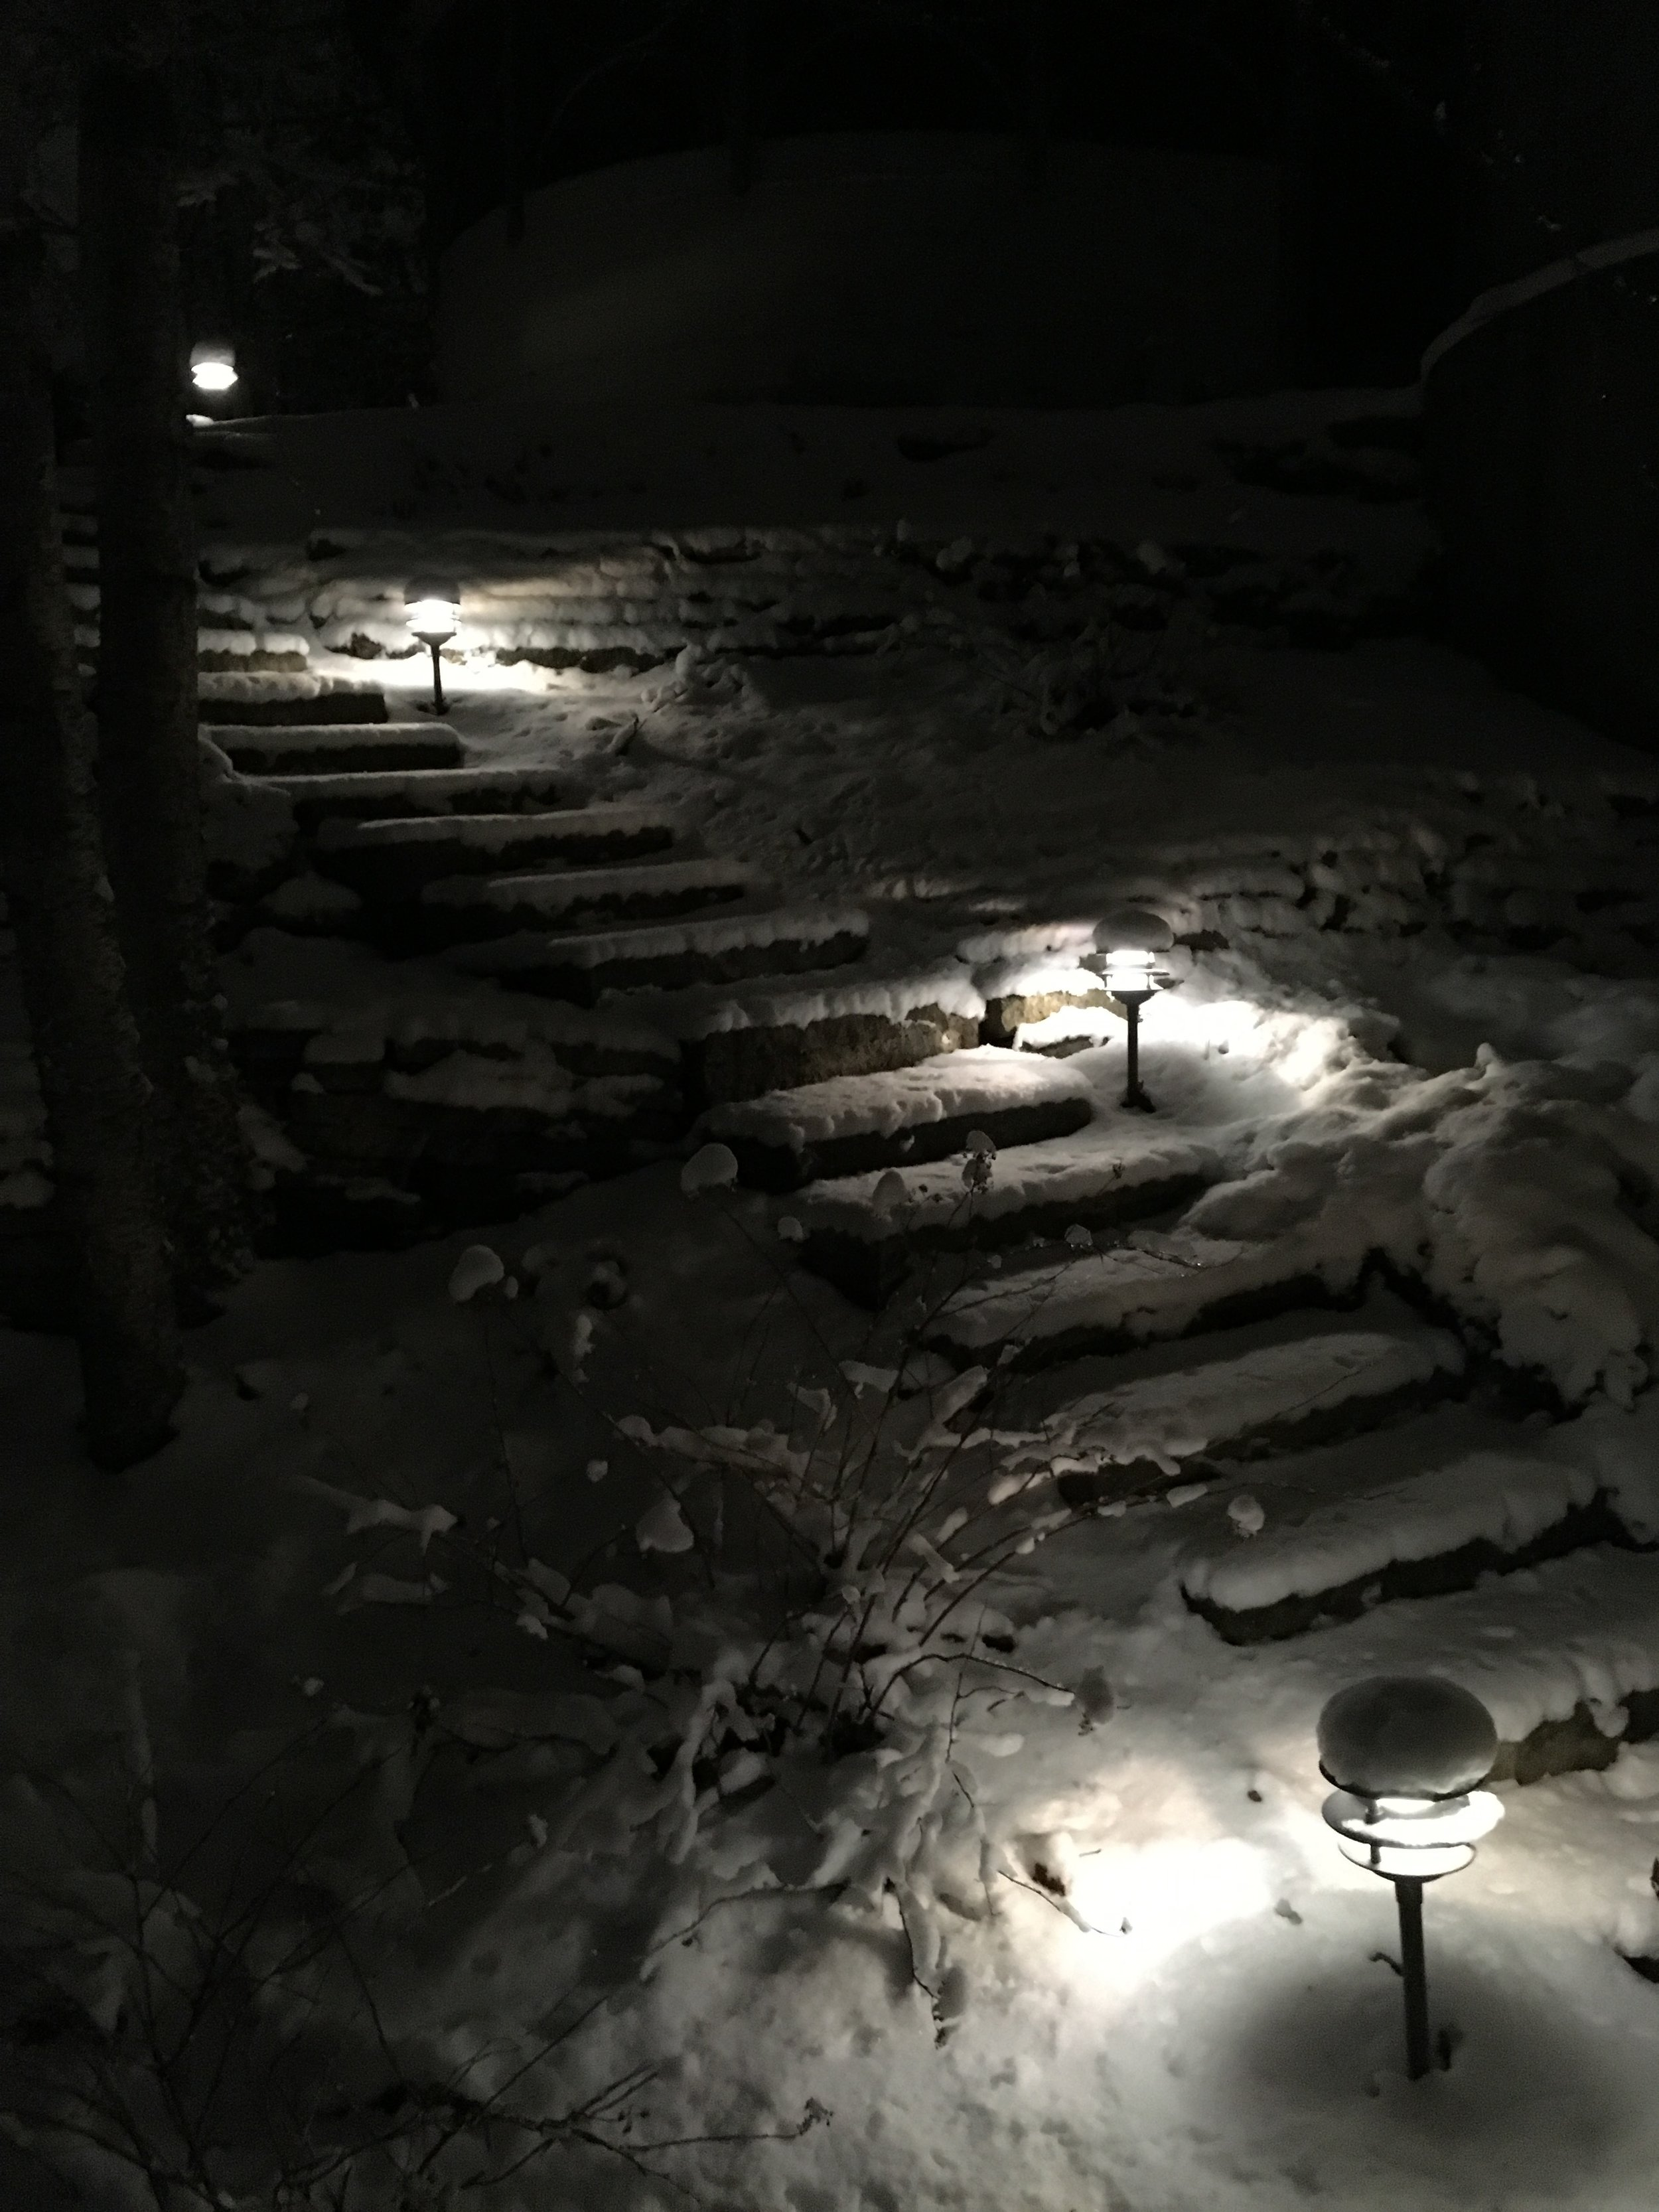 Path lighting adds mystery and intrigue to the night-time landscape.